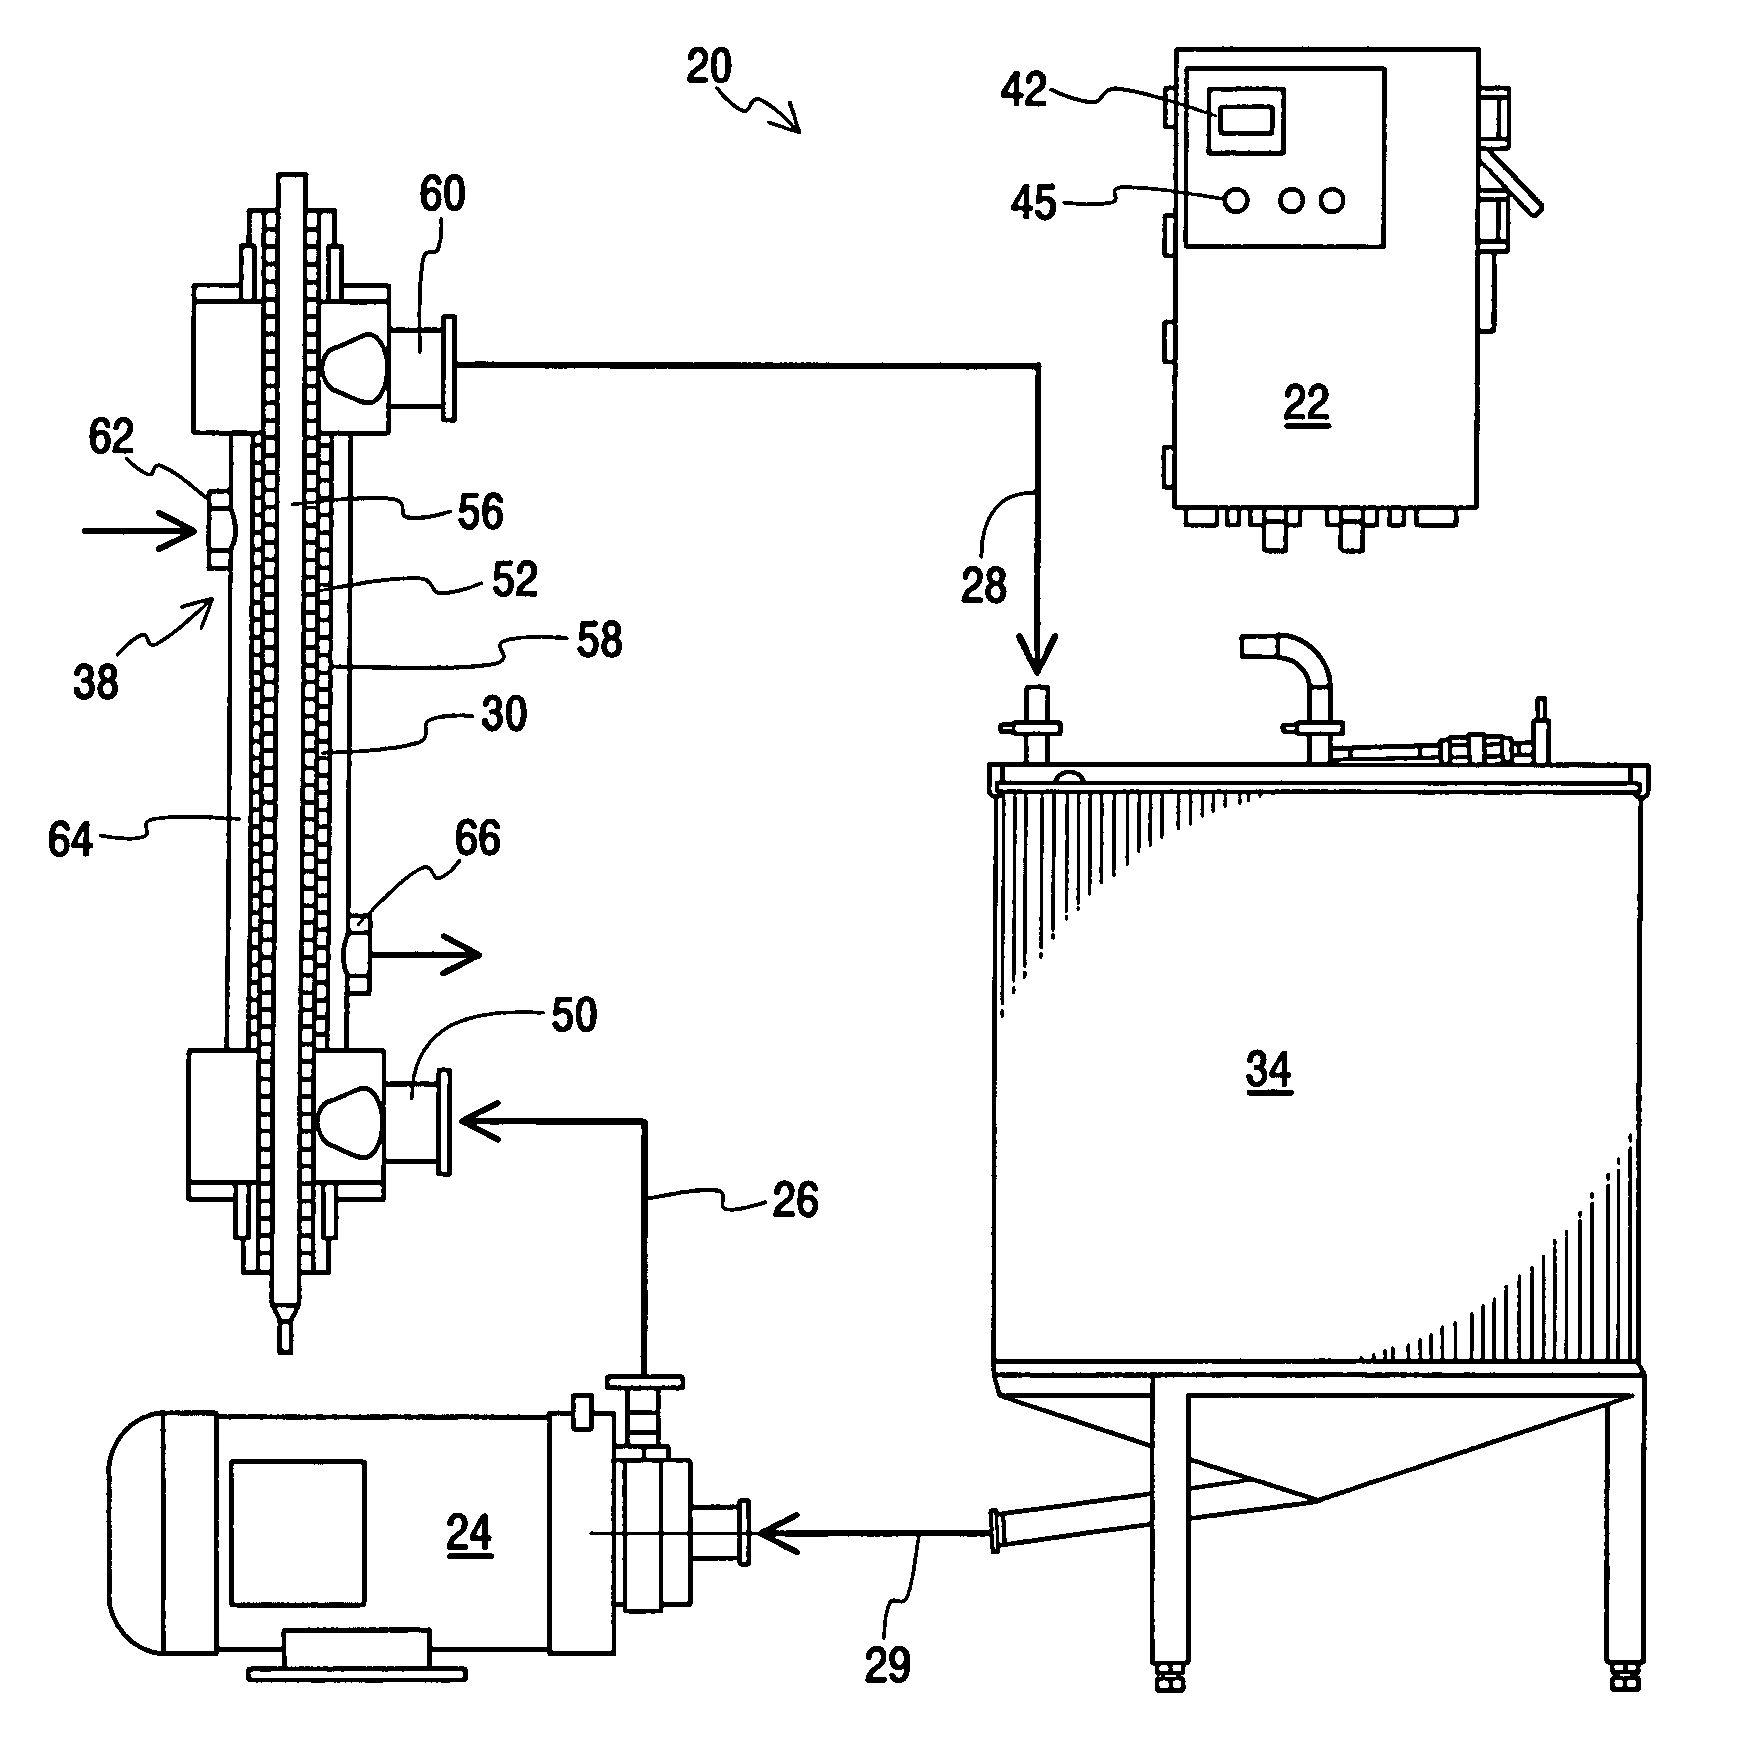 US08127667 20120306 D00000 patent us8127667 apparatus for pasteurizing milk for feeding to  at nearapp.co